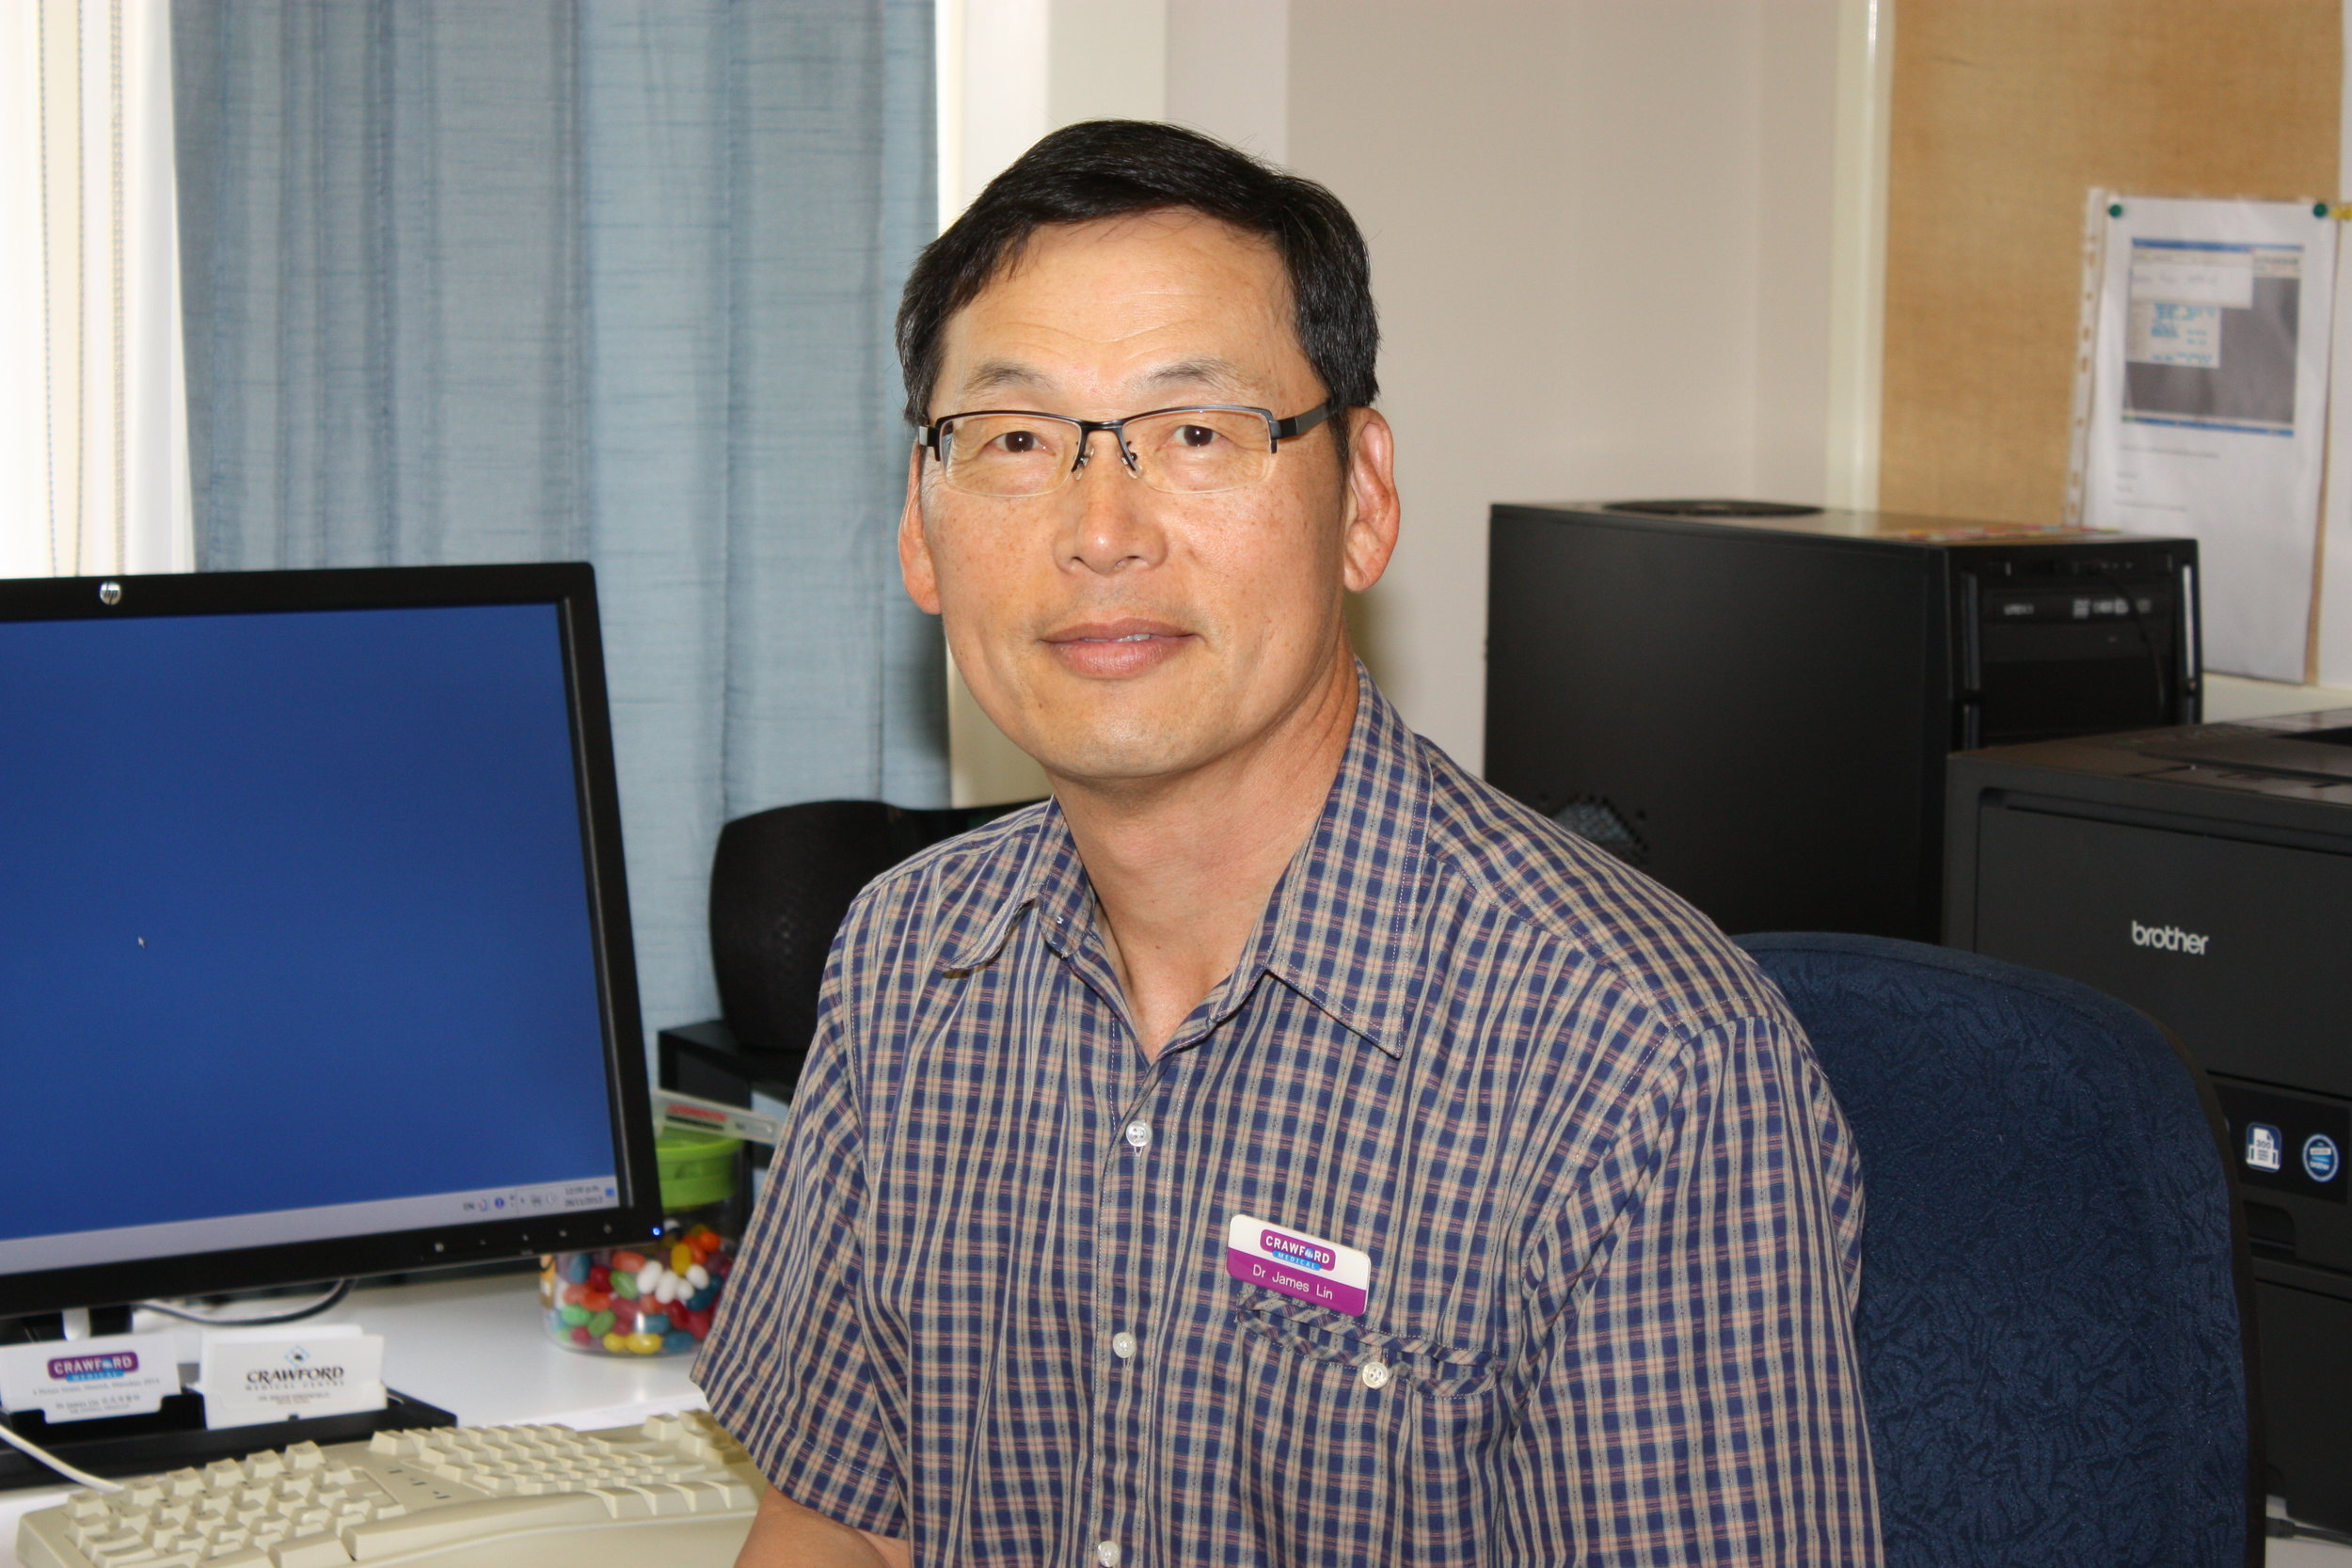 Contact Crawford Medical Centre to book an appointment with Dr. Lin